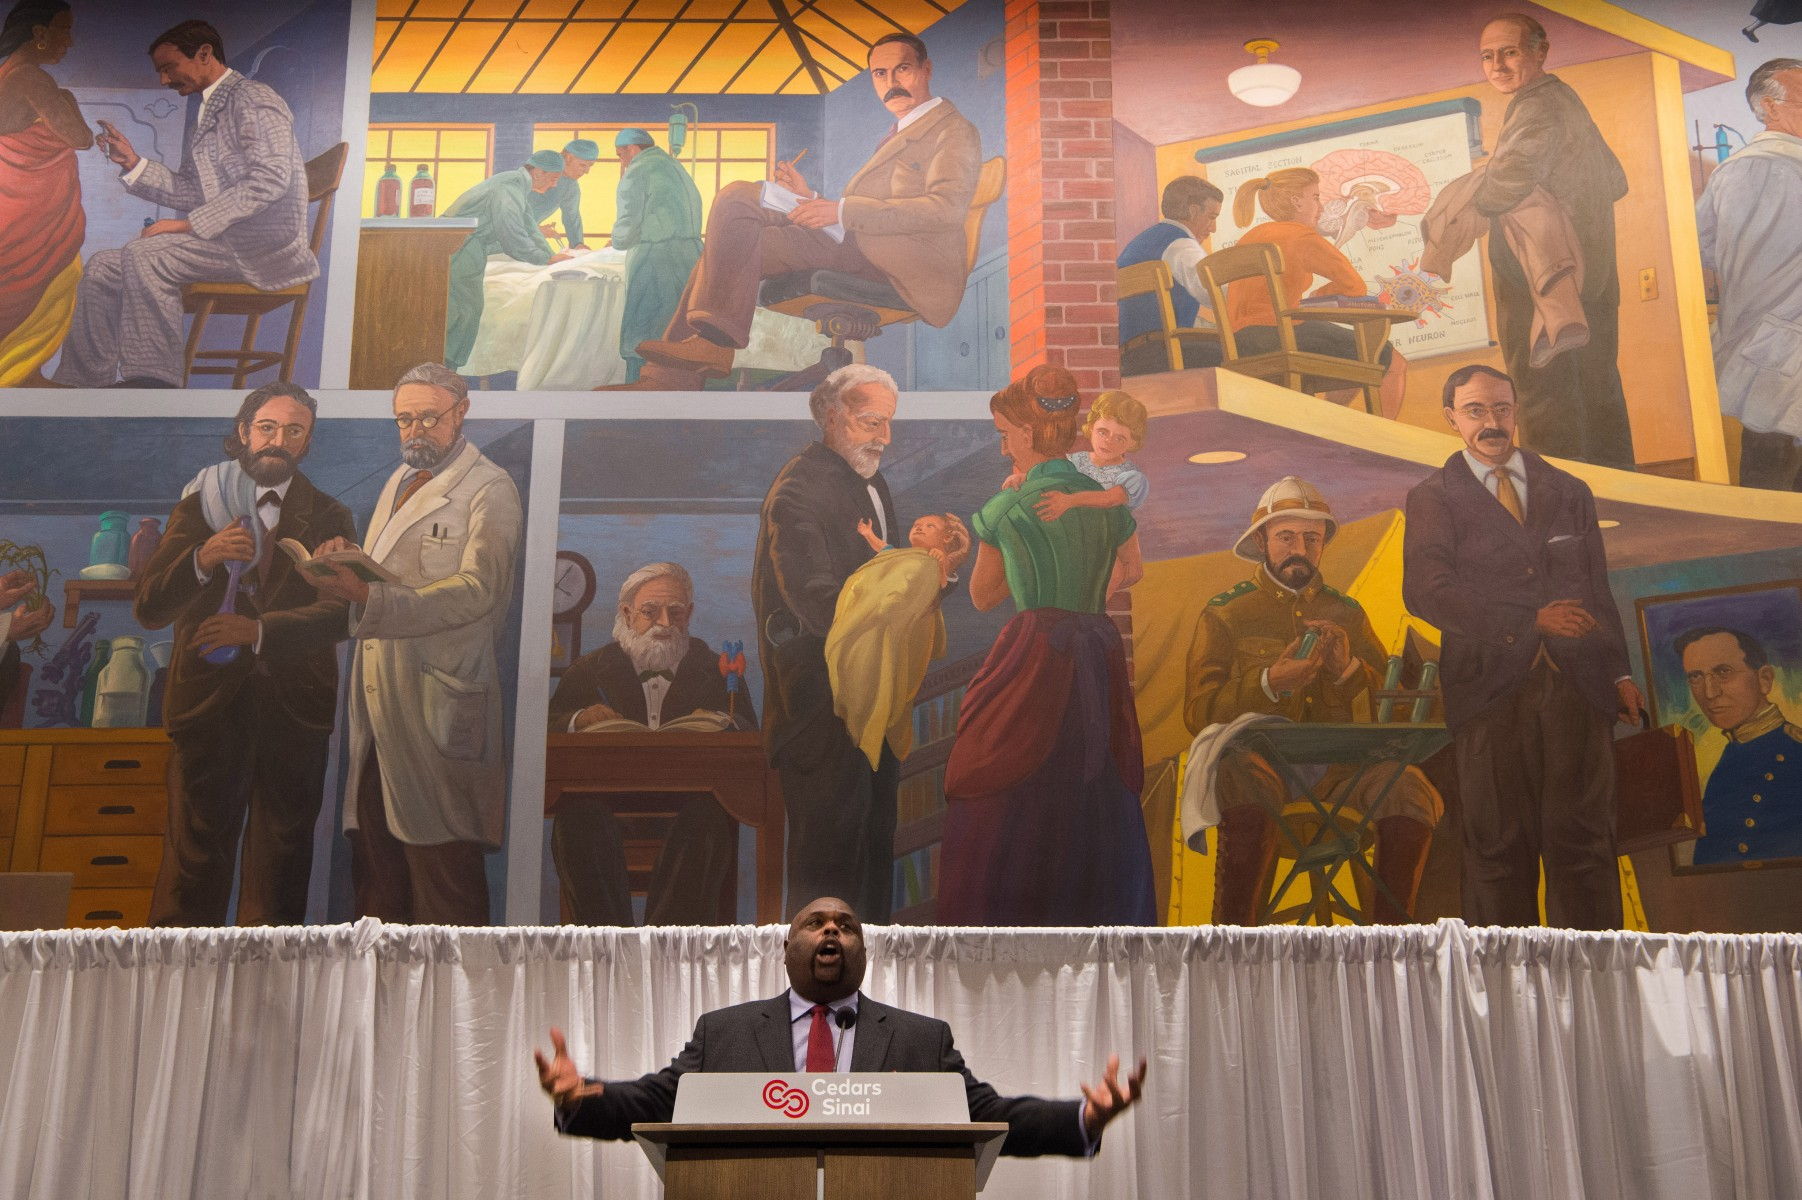 With a mural depicting the history of Jewish medicine in the background, motivational speaker Rick Rigsby, PhD, gave an inspiring keynote address at Cedars-Sinai's 18th Annual Dr. Martin Luther King Jr. Day Celebration. Photo by Cedars-Sinai.